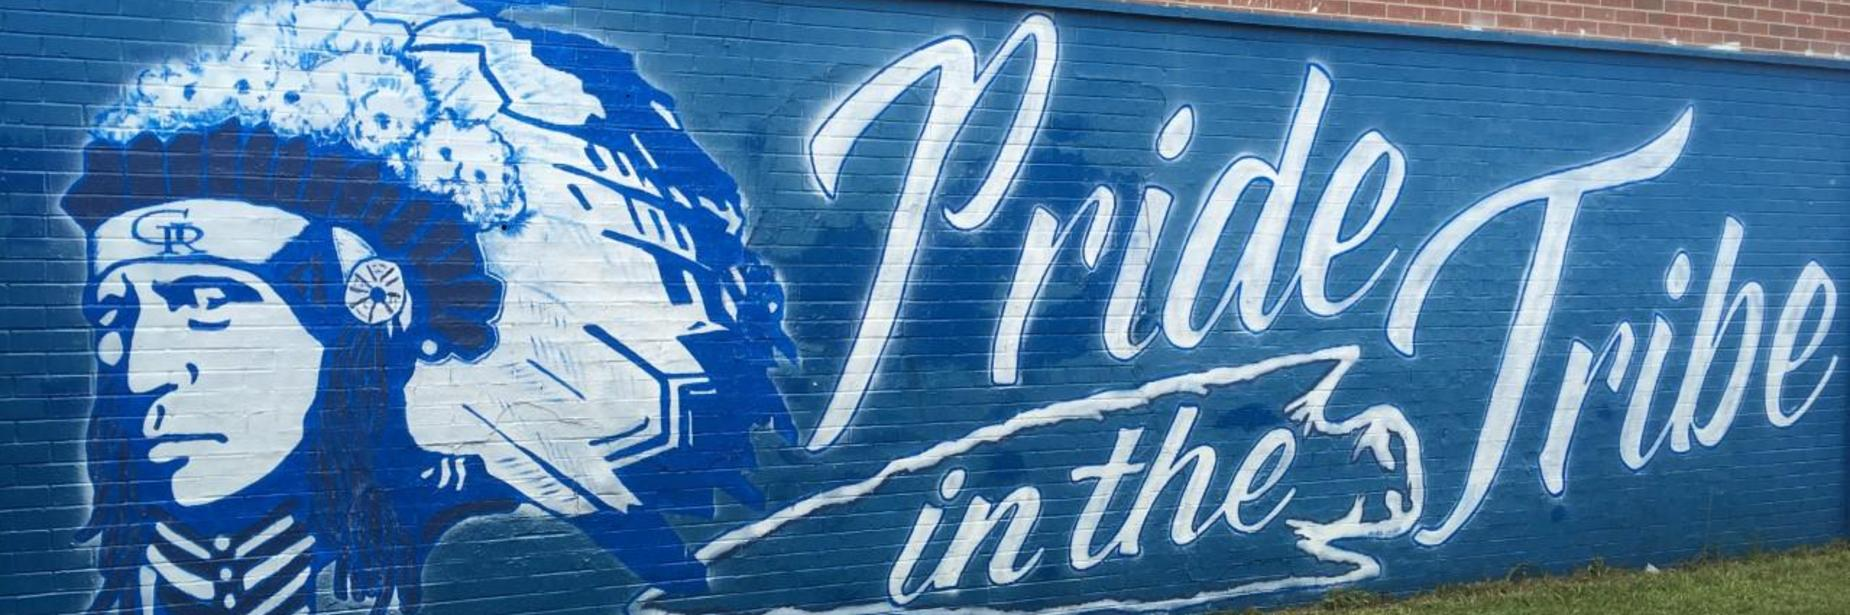 Pride in the tribe painting on old gym